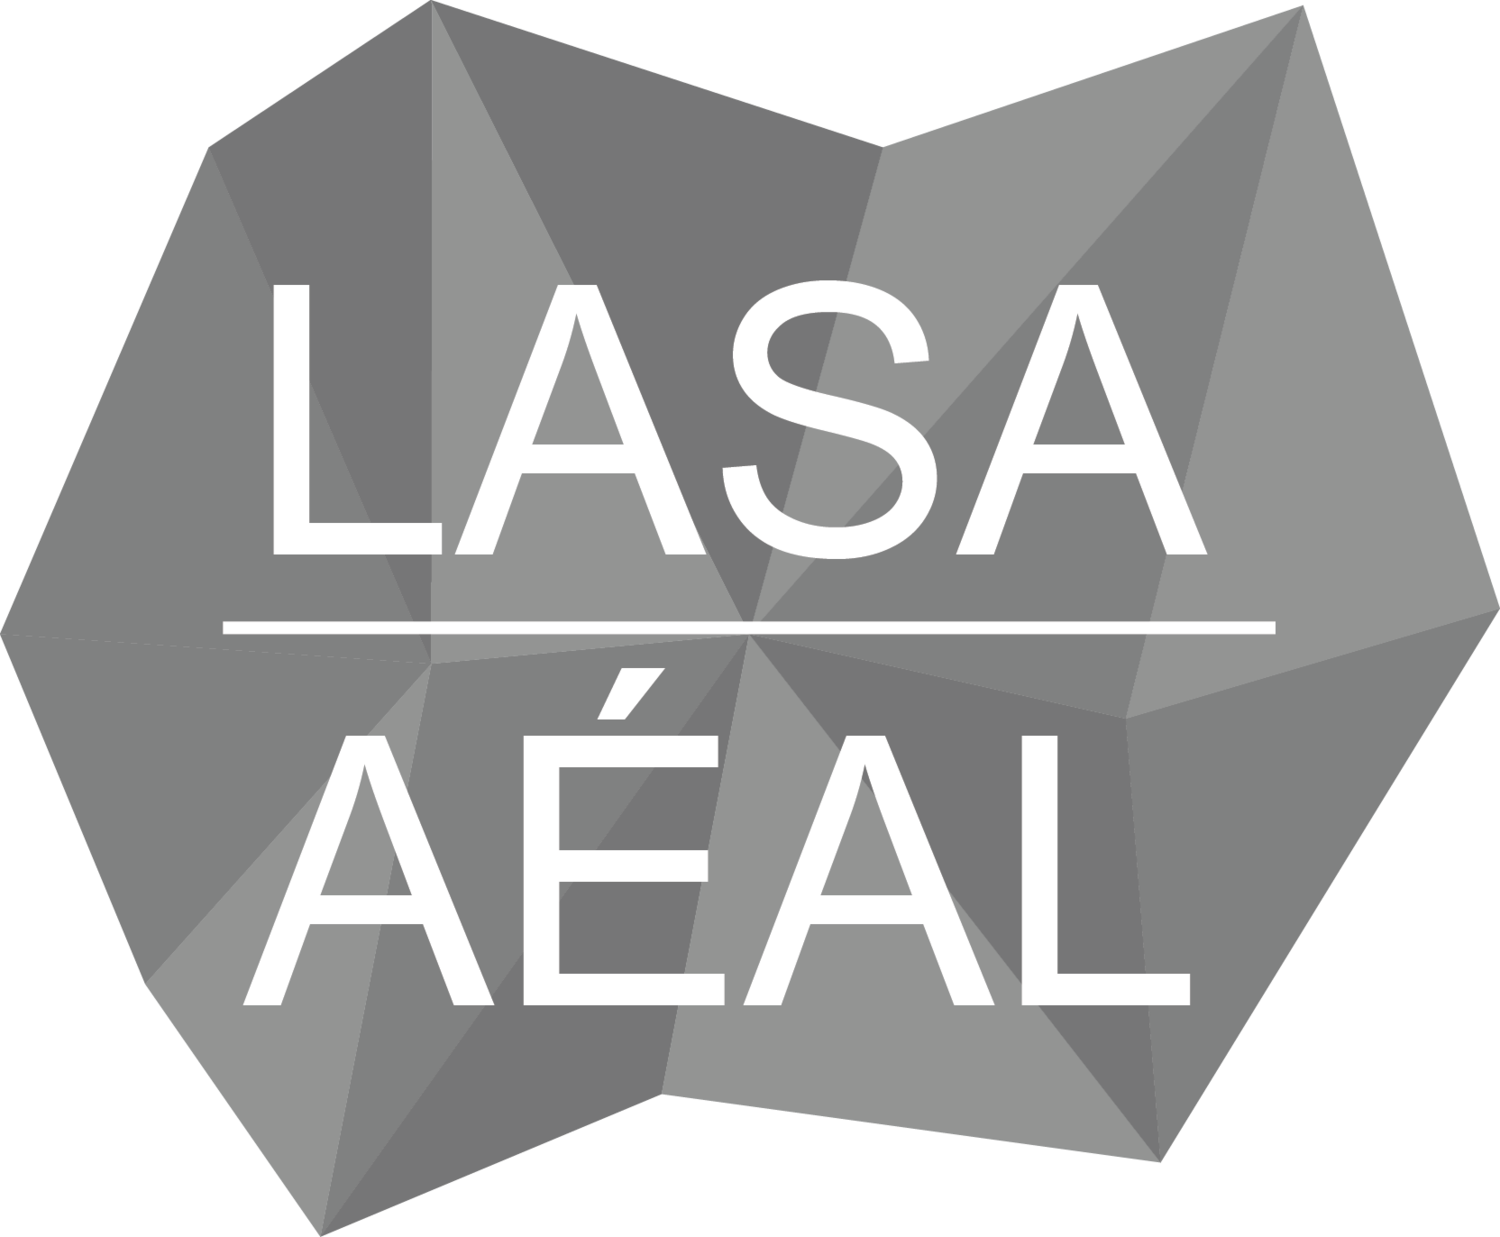 LASA | Laurentian Architecture Student Association